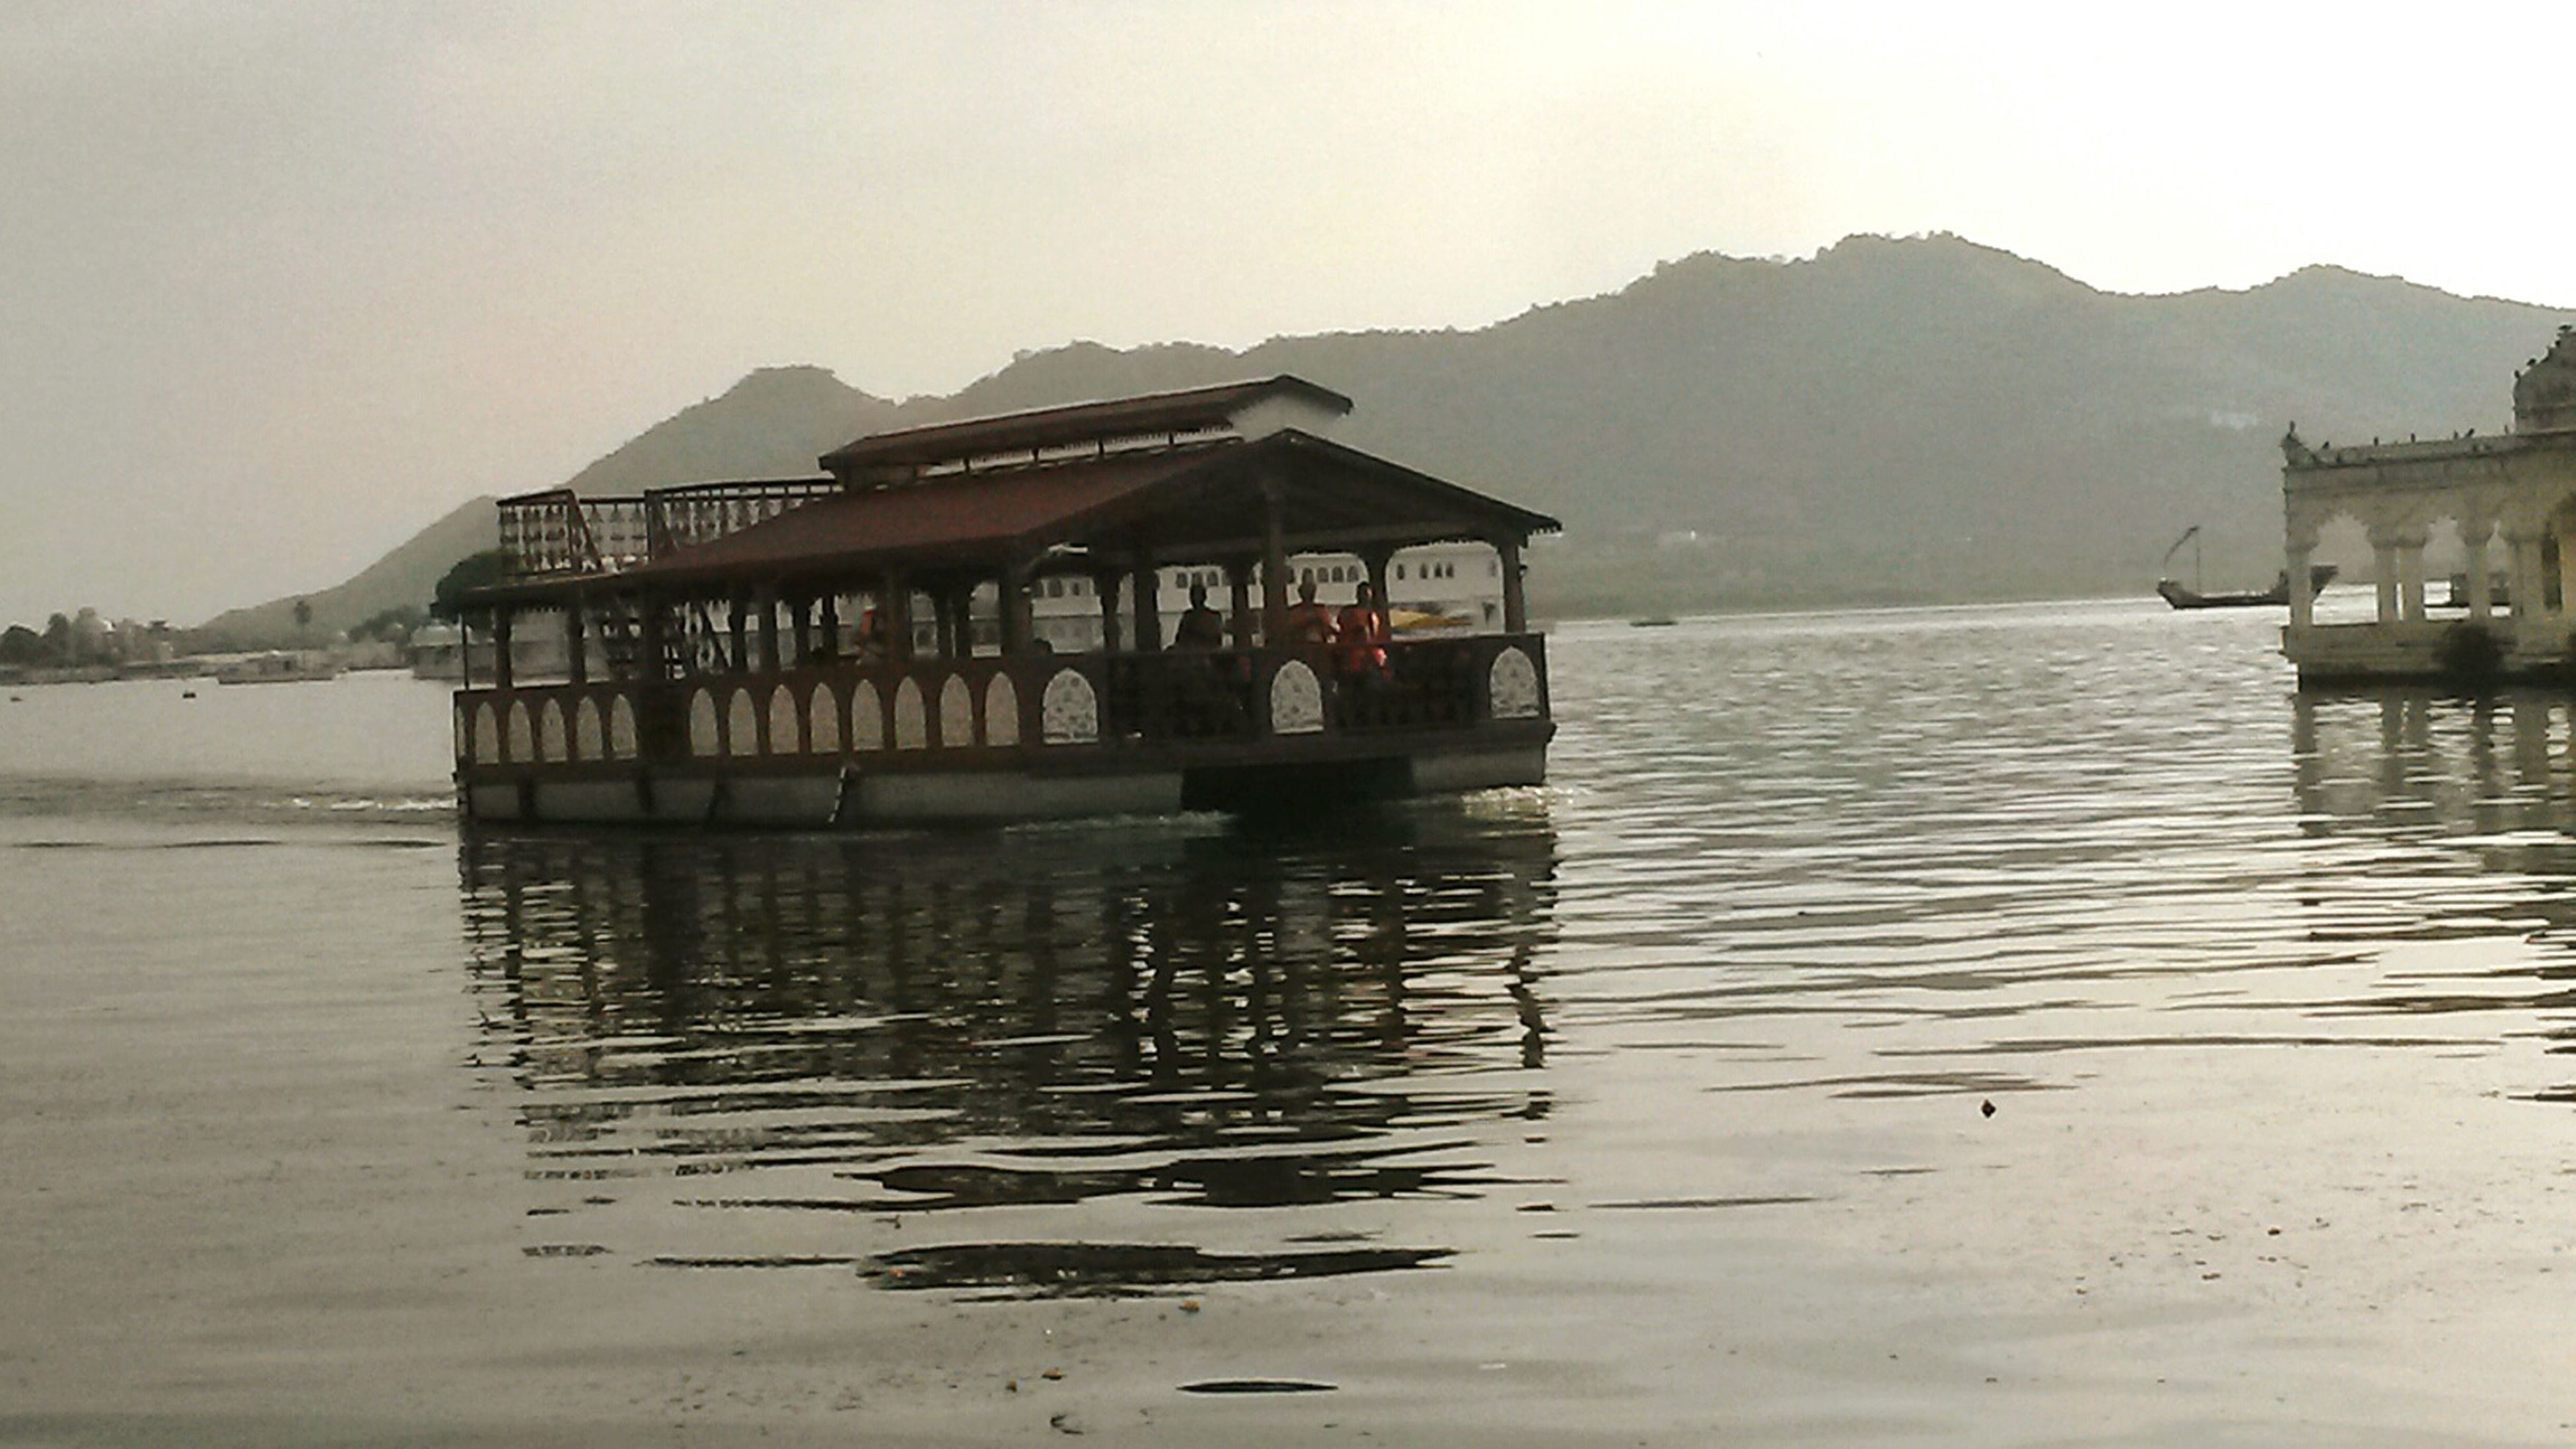 water, built structure, mountain, waterfront, architecture, building exterior, reflection, clear sky, nautical vessel, lake, transportation, tranquility, boat, house, scenics, tranquil scene, sky, mode of transport, pier, nature